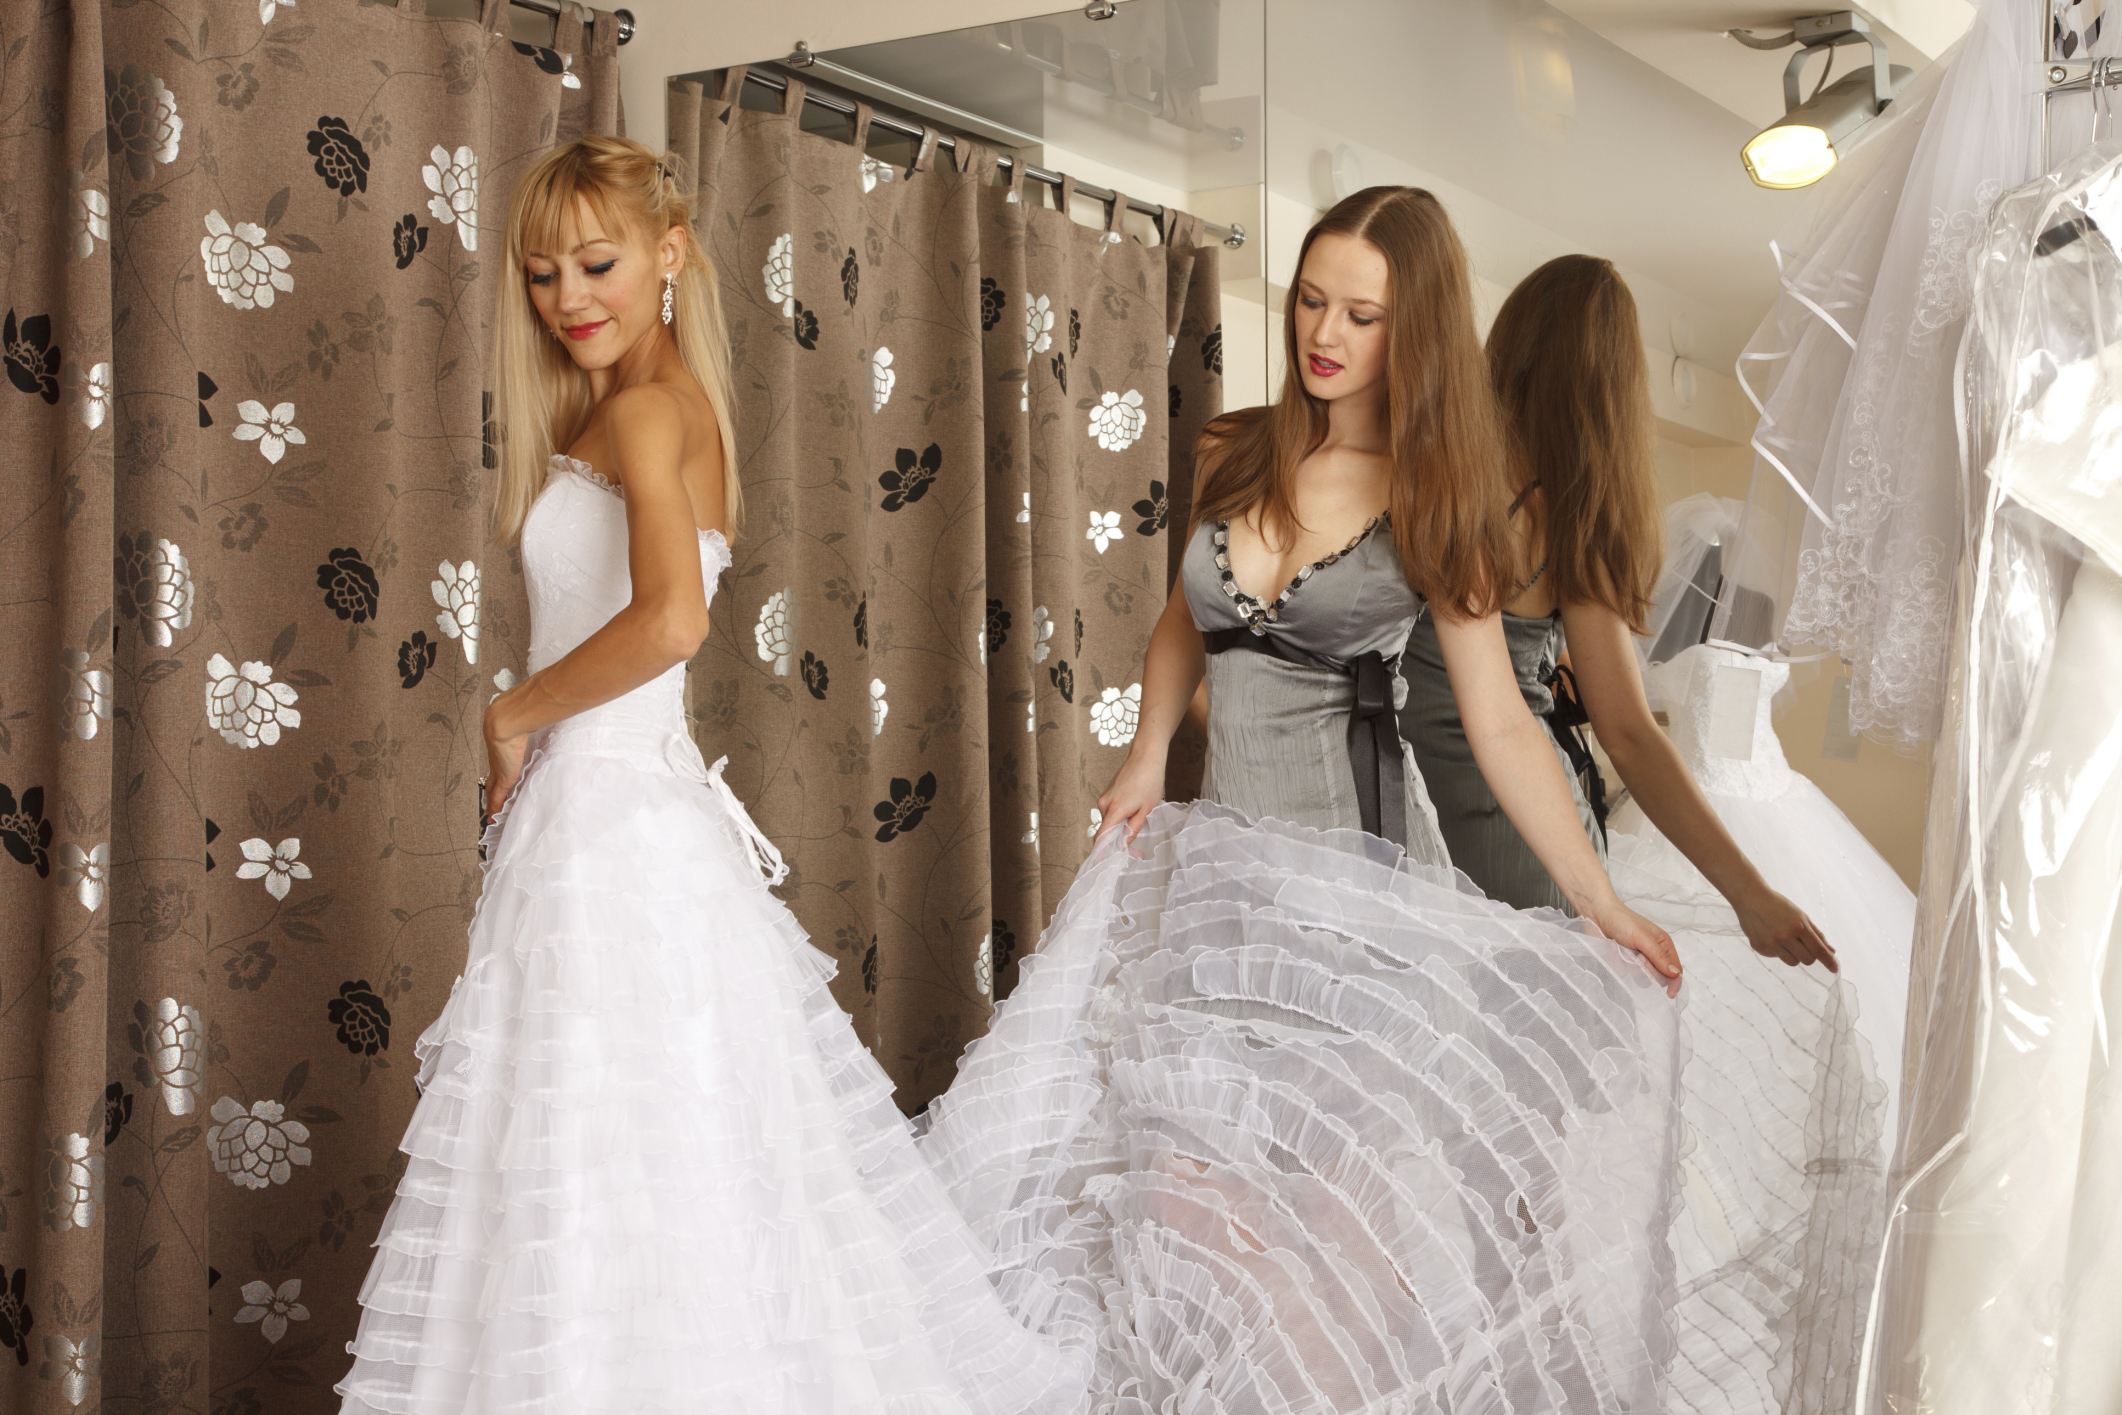 final fittings for your wedding dress - articles - easy weddings